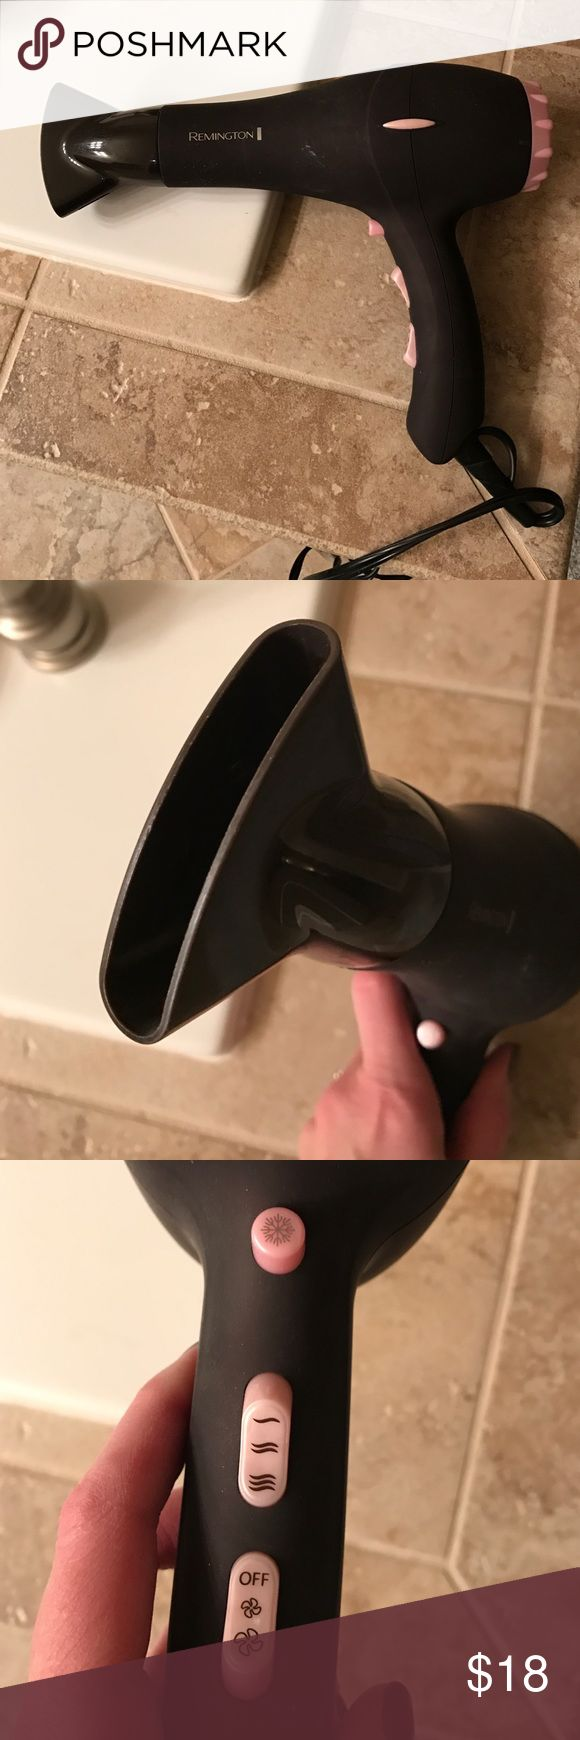 Remington Hair Dryer Almost new Remington Hair Dryer.  Great shape and only used a few times. 3 speeds and 3 levels of heat.  See pics. Remington Accessories Hair Accessories